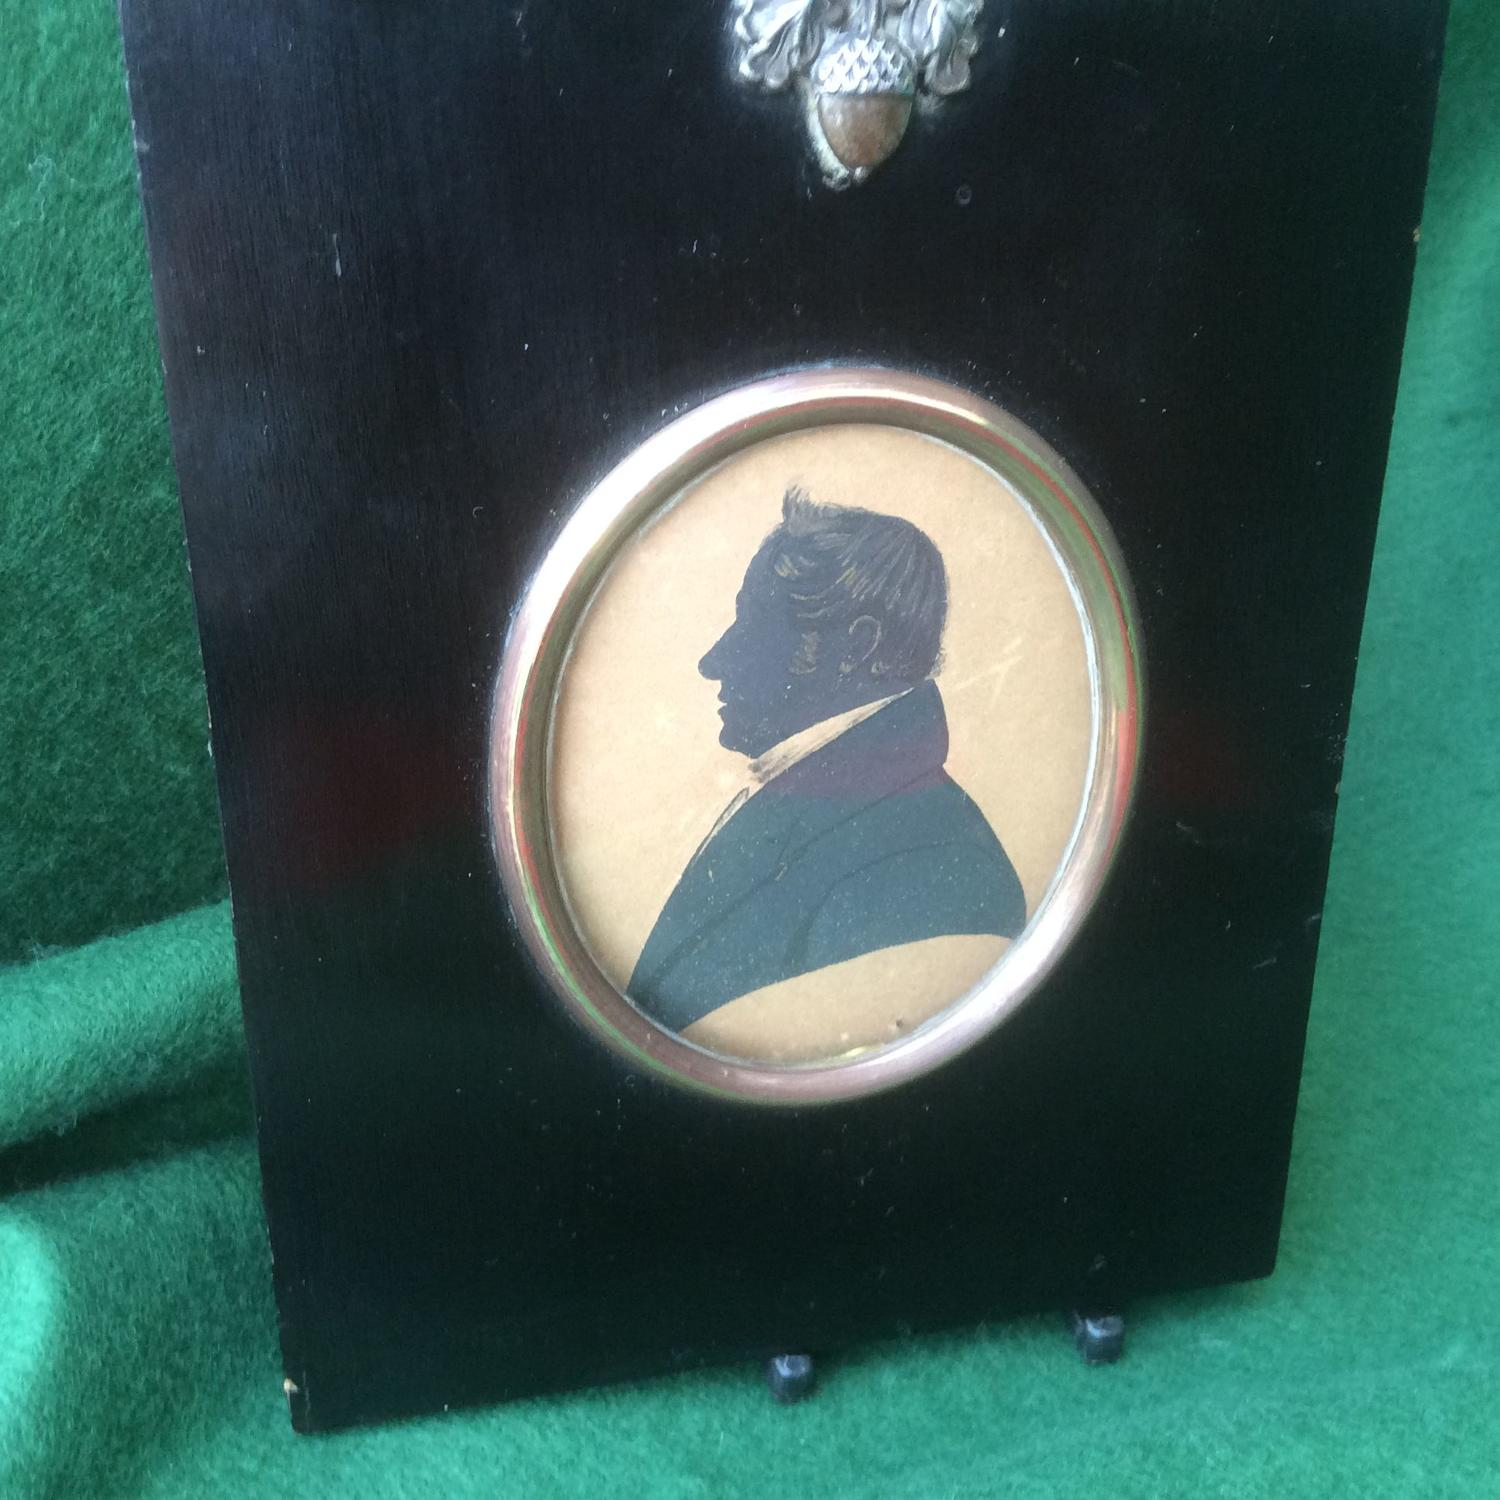 19th Century silhouette of a gentleman